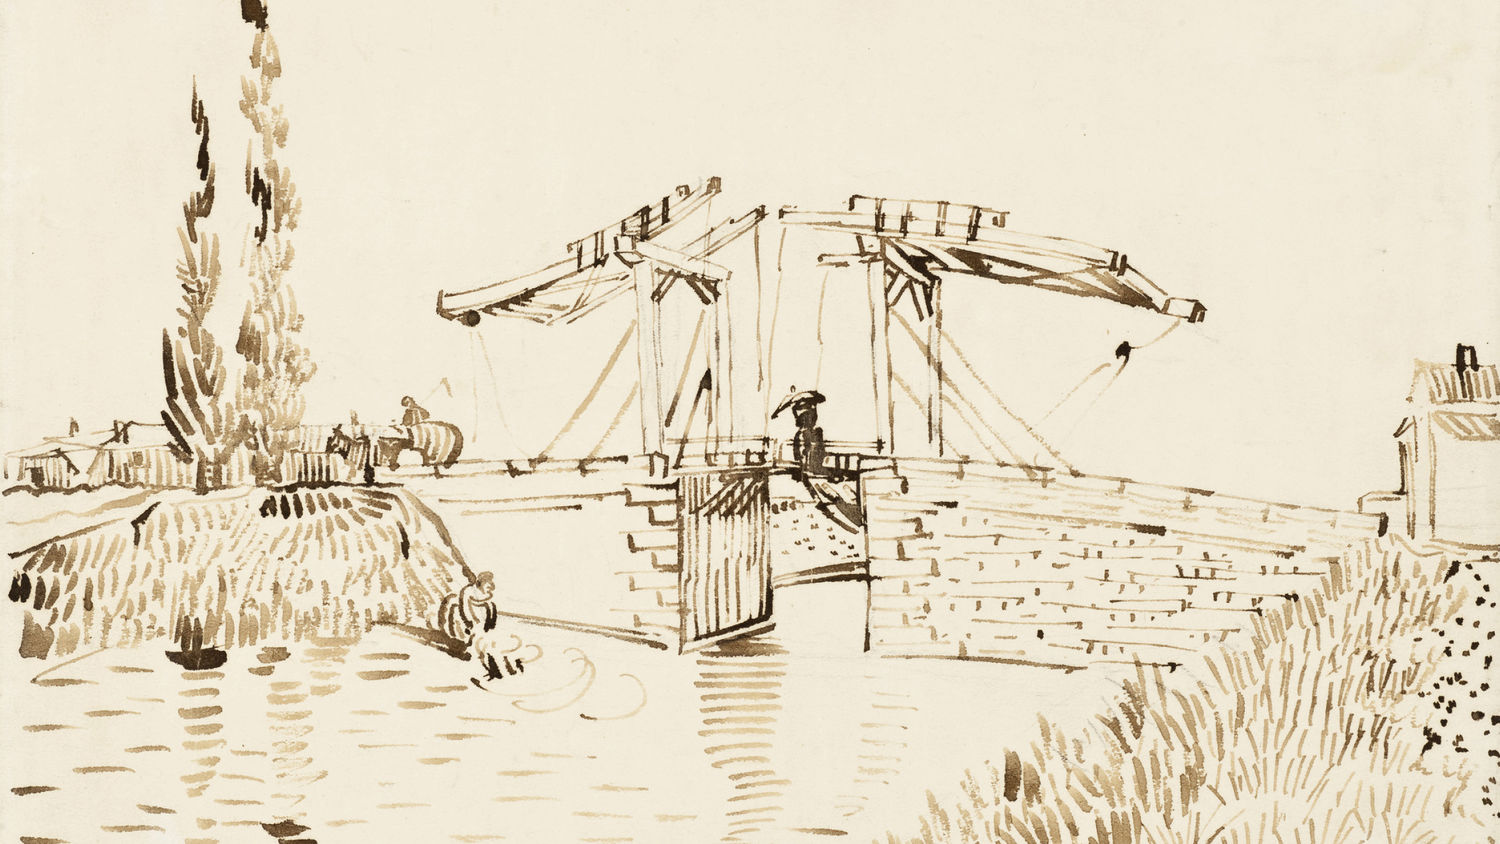 Vincent van Gogh, The Langlois Bridge, 1888, Brown ink over traces of black chalk, Los Angeles County Museum of Art.